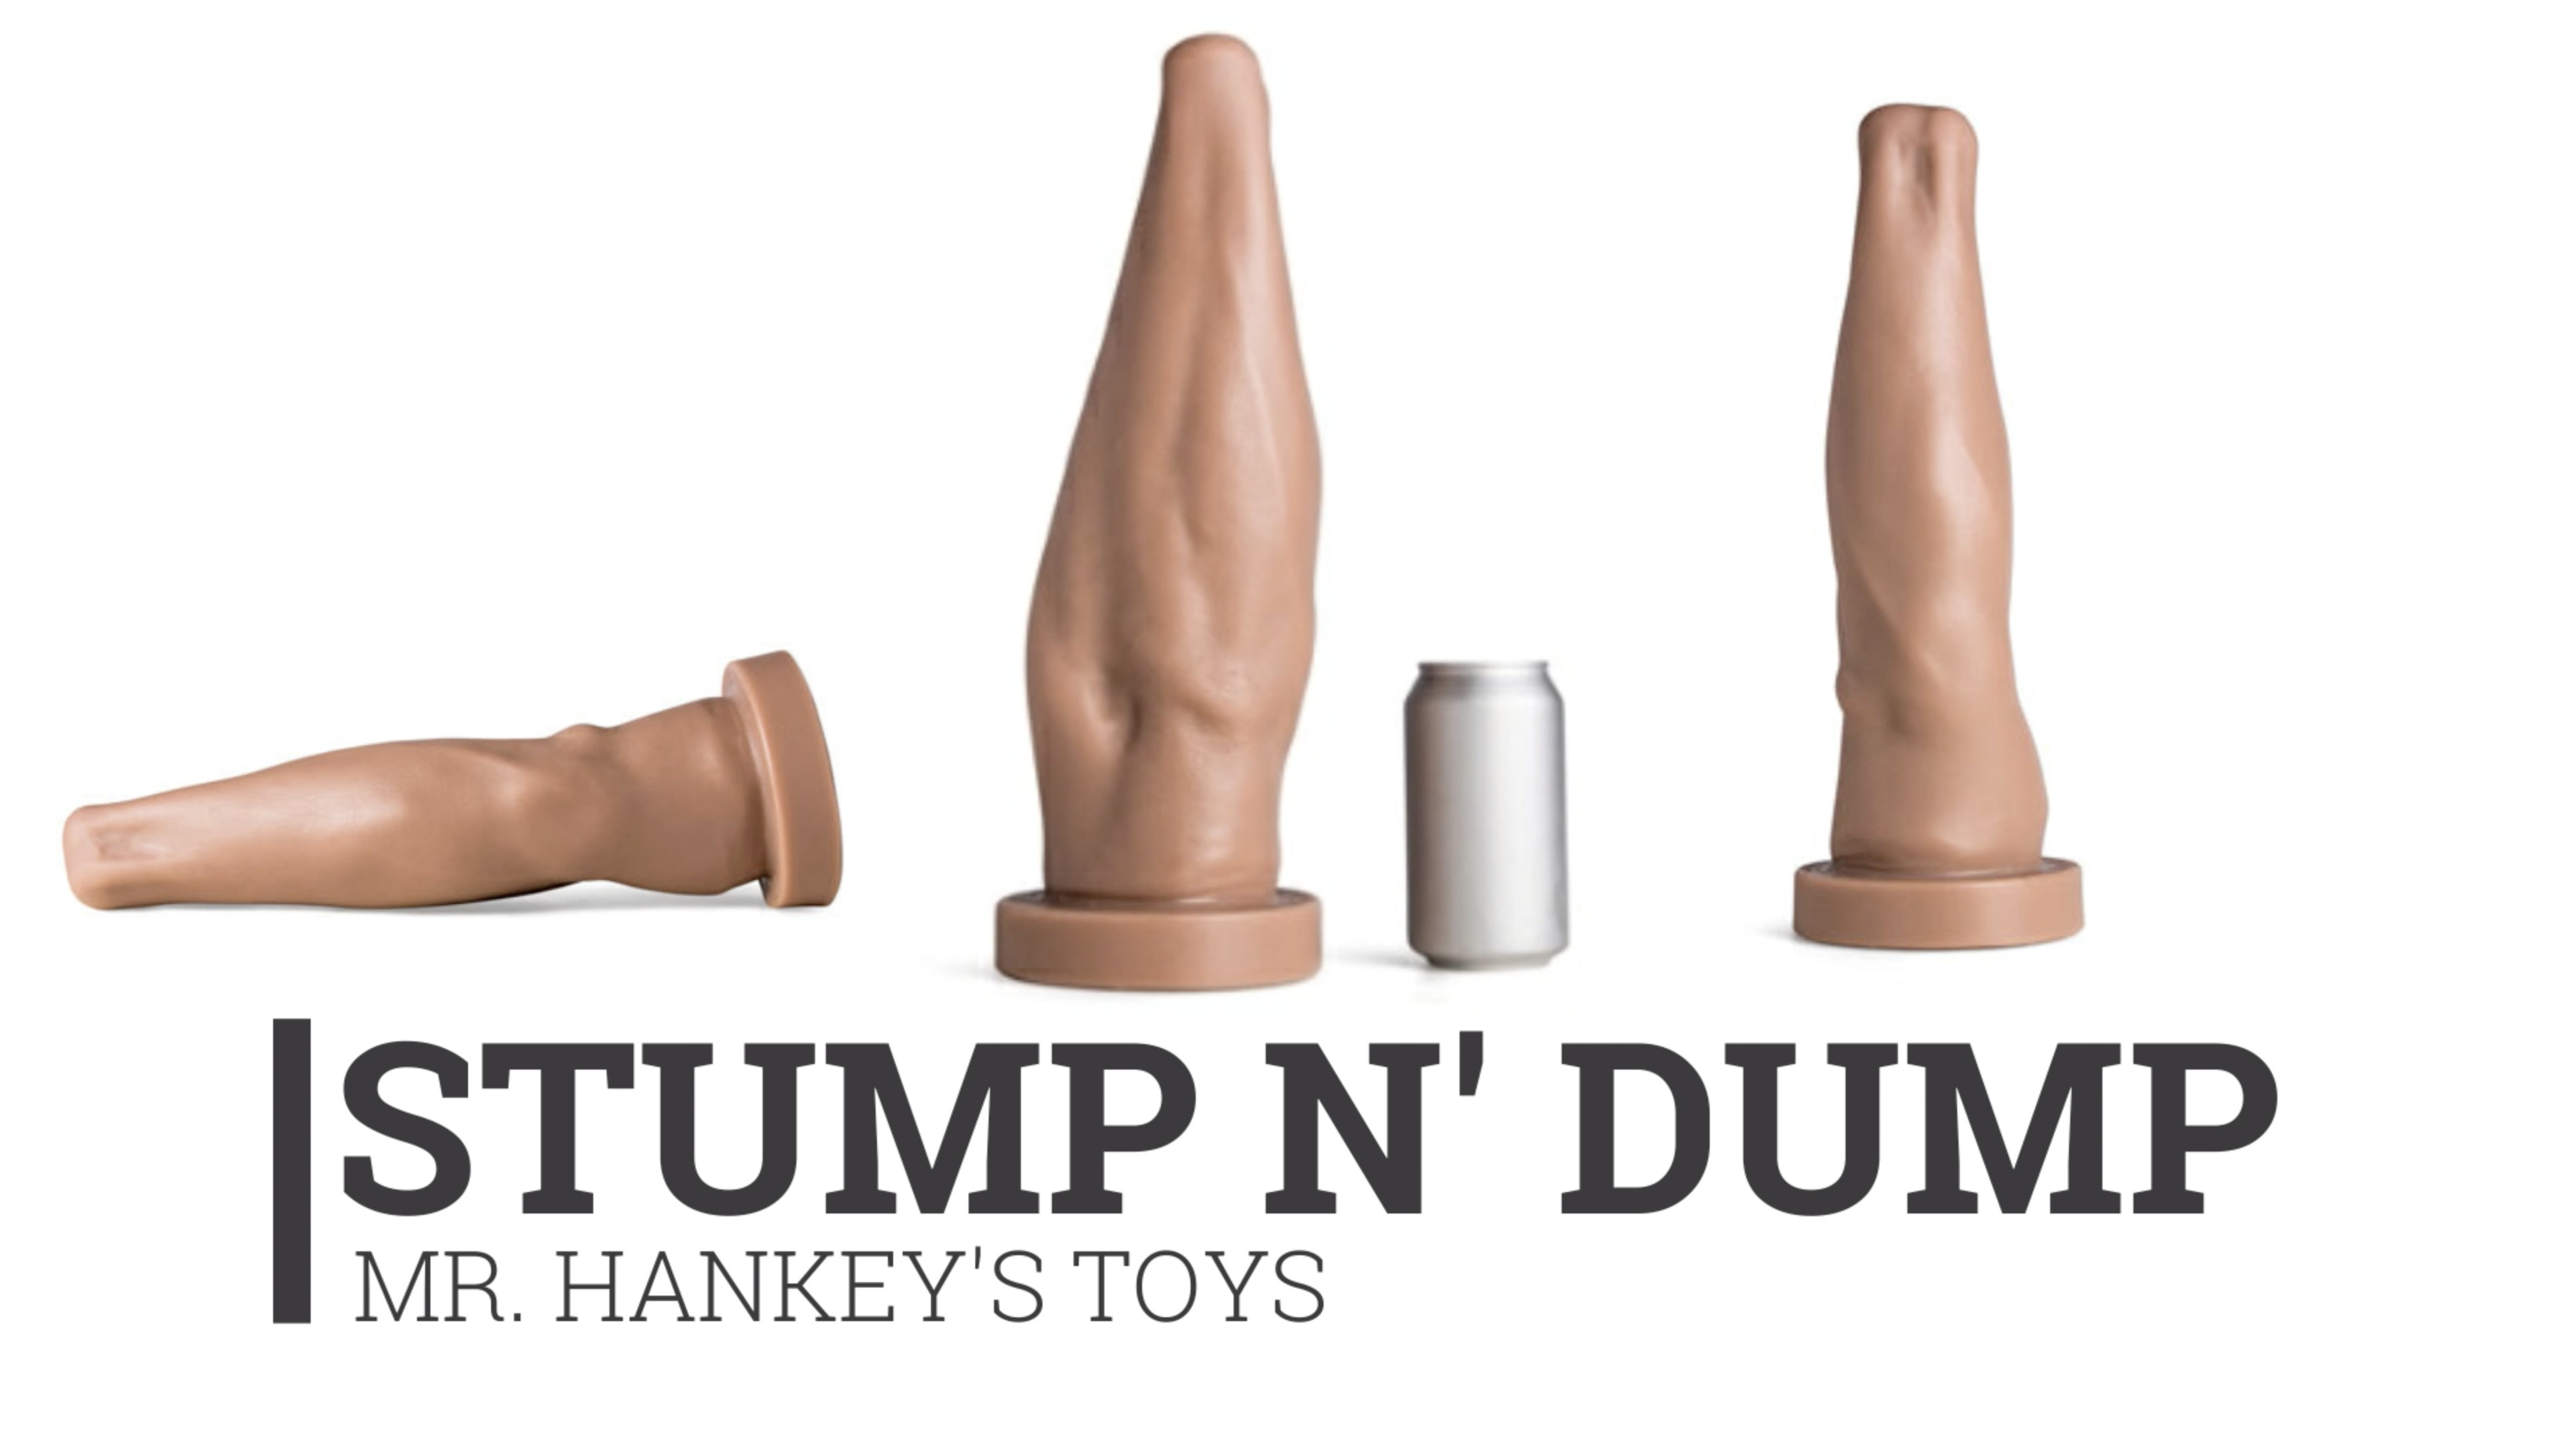 Mr. Hankey's Arm The Stump n' Dump – A Great Toy for Fisters who want to Experience The Elbow